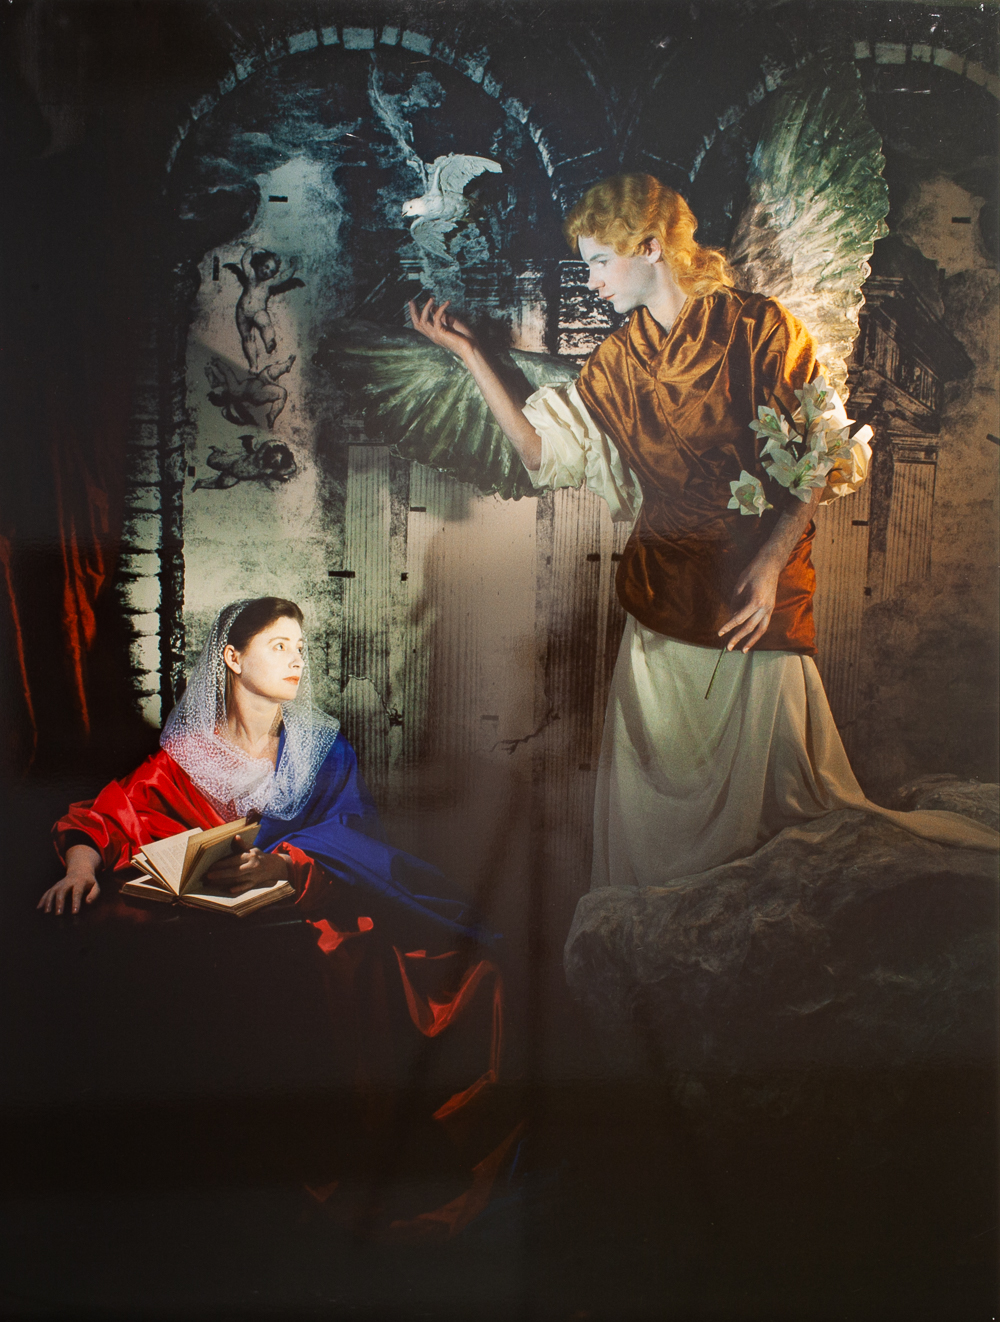 Farrell & Parkin,  The Annunciation  from the series  Repentance,  1988, Type C Photograph, 166 x 128 cm.